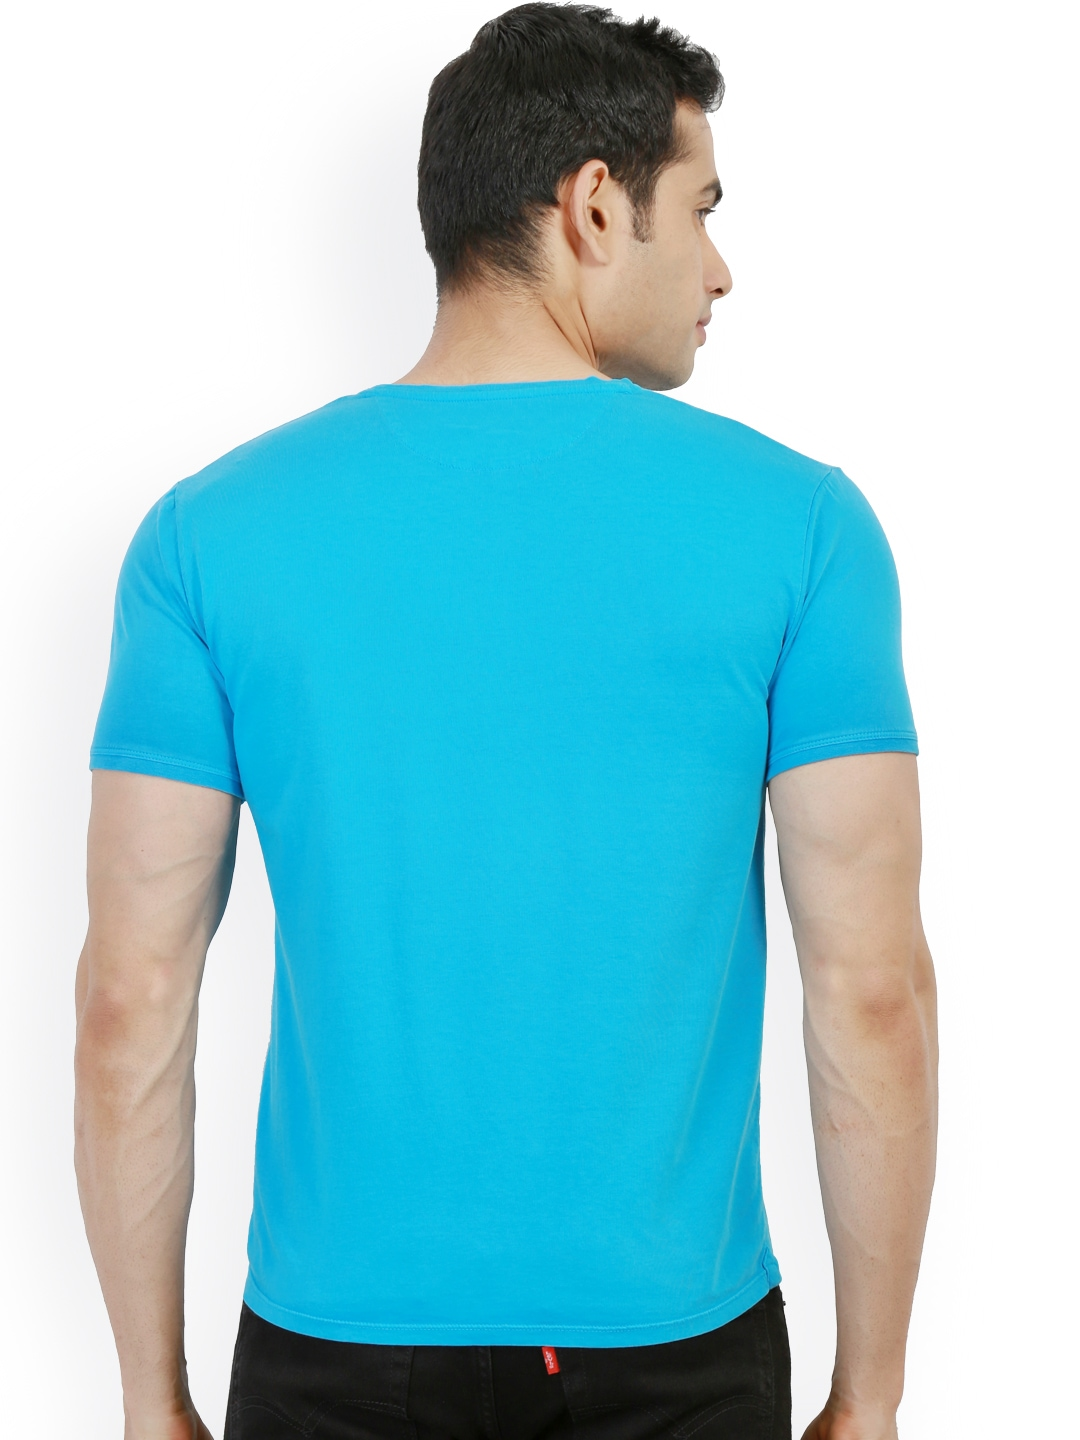 Myntra design classics turquoise blue printed slim fit t for Myntra t shirt design